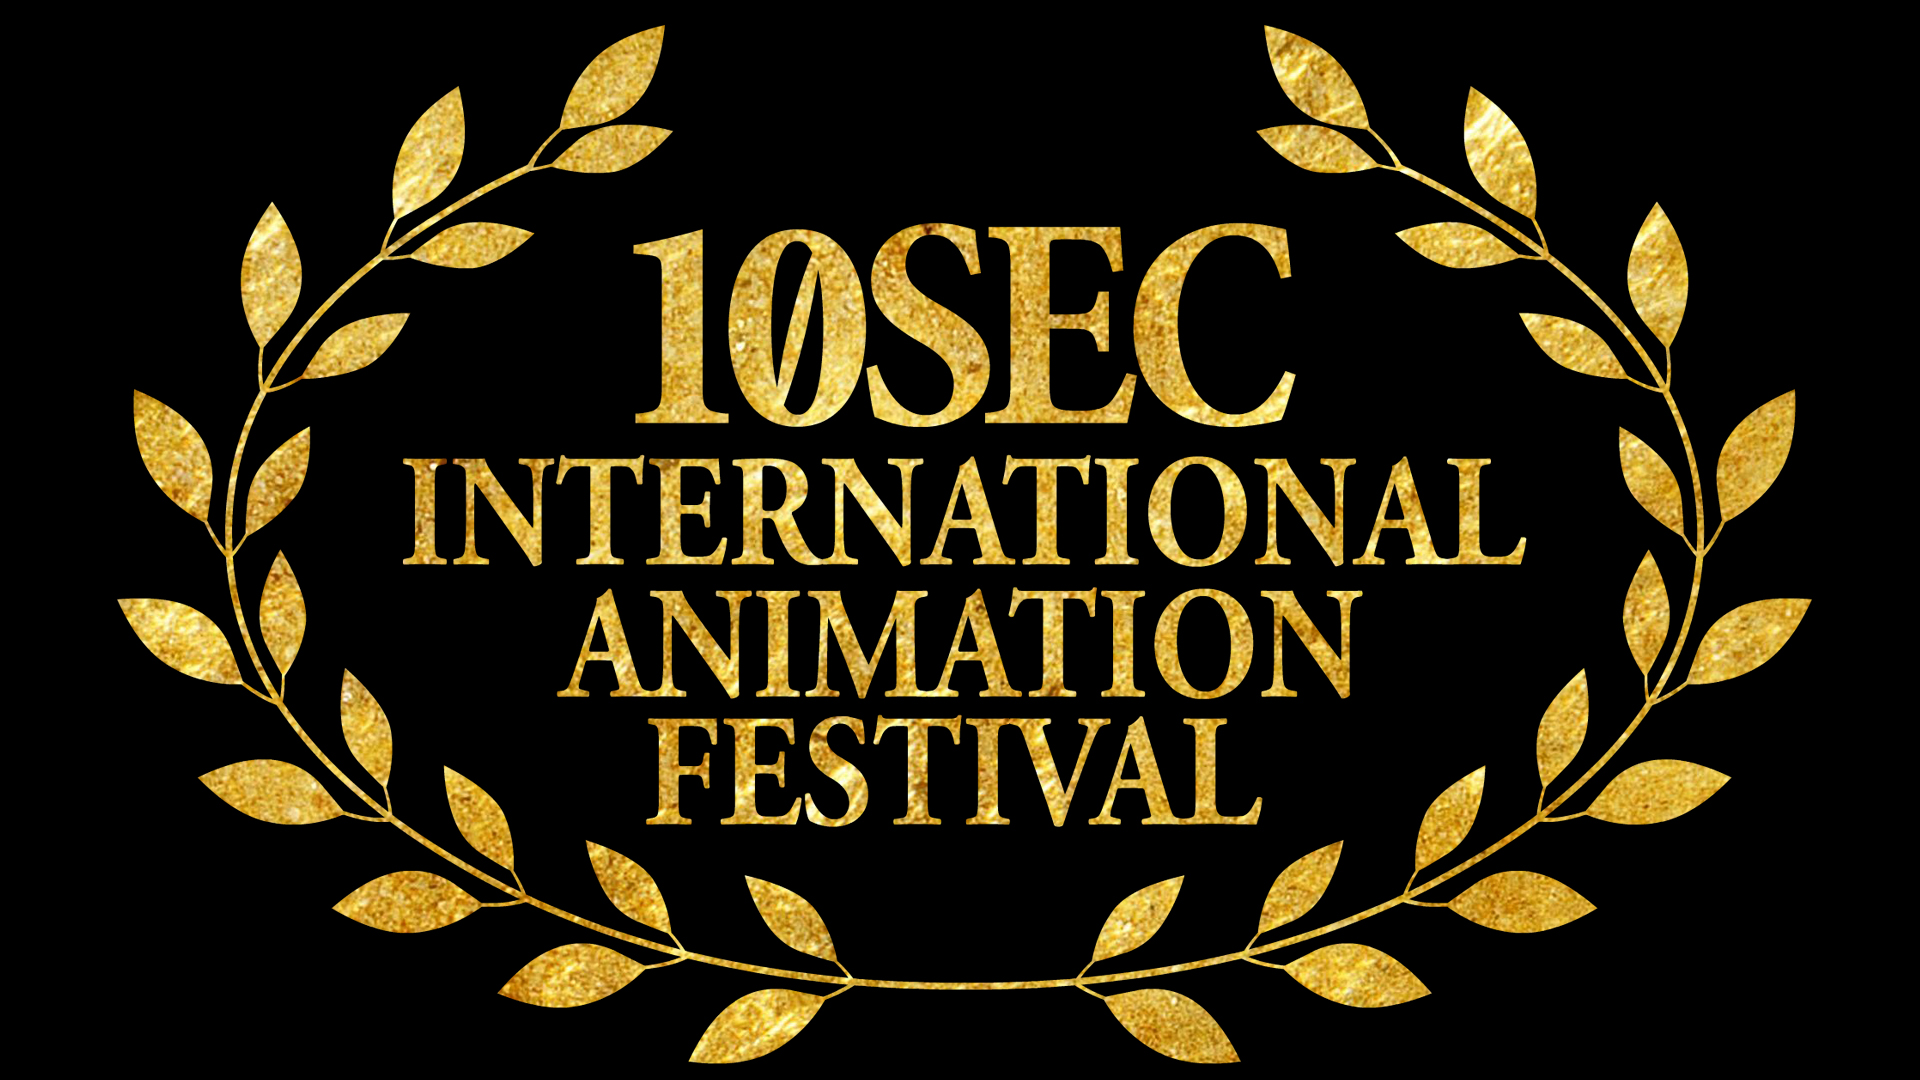 10sec-international-animation-festival